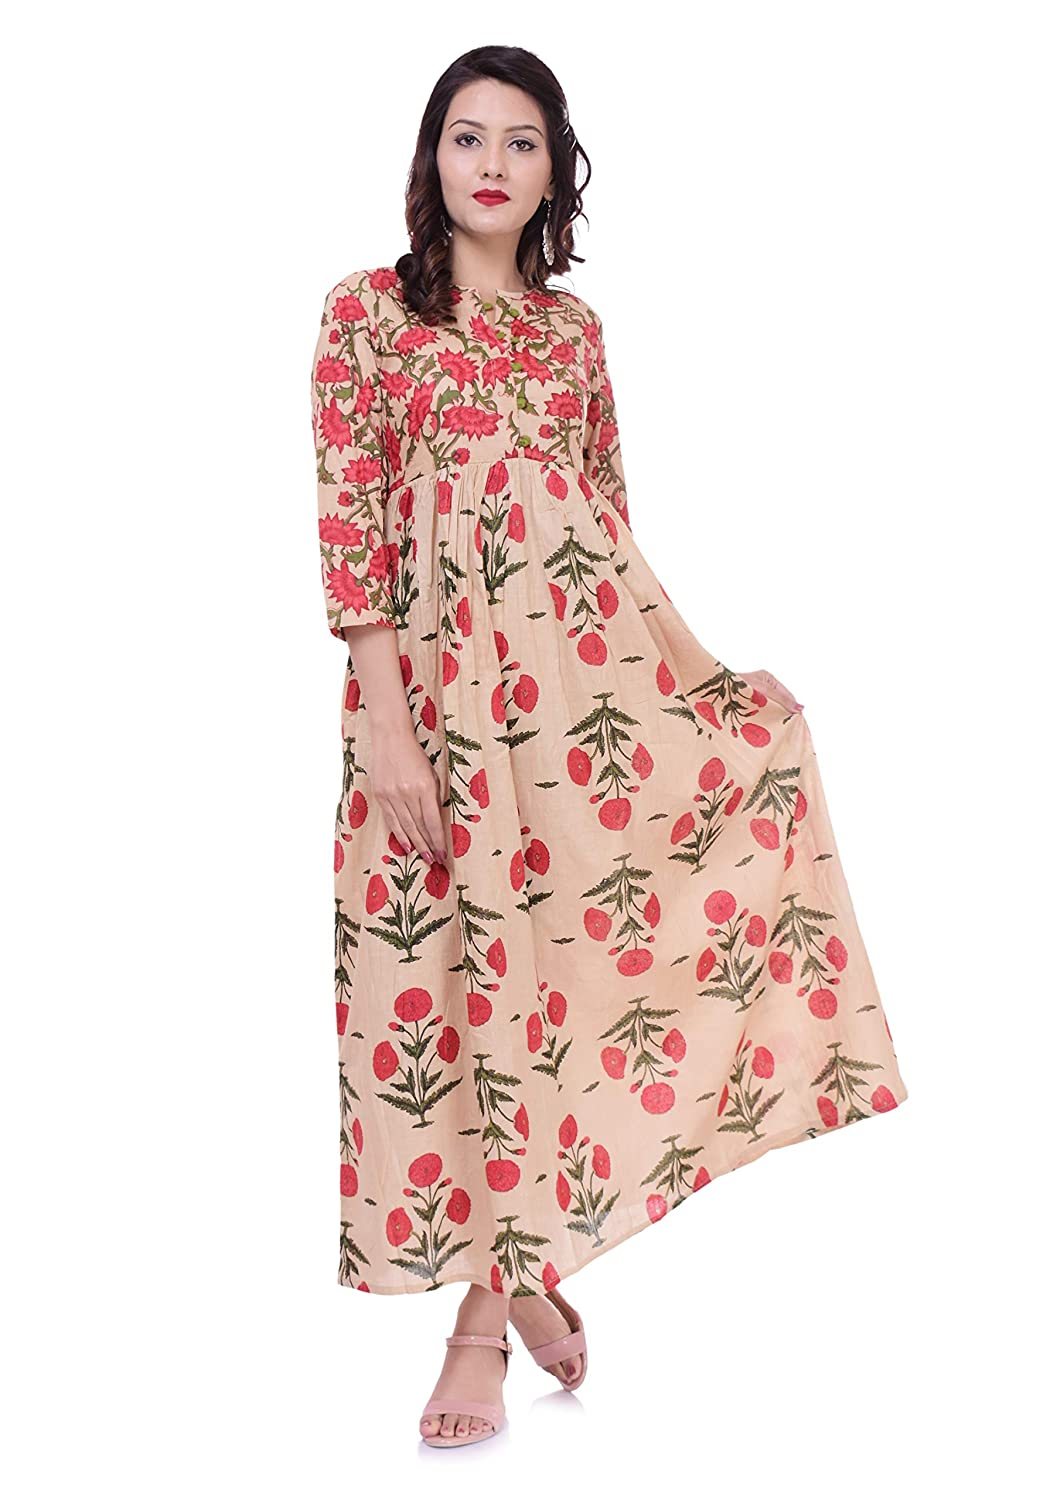 eafb8f6ef8fab STREE Cotton Ethnic Top Designer Floral Printed Flared Kurti: Amazon.in:  Clothing & Accessories